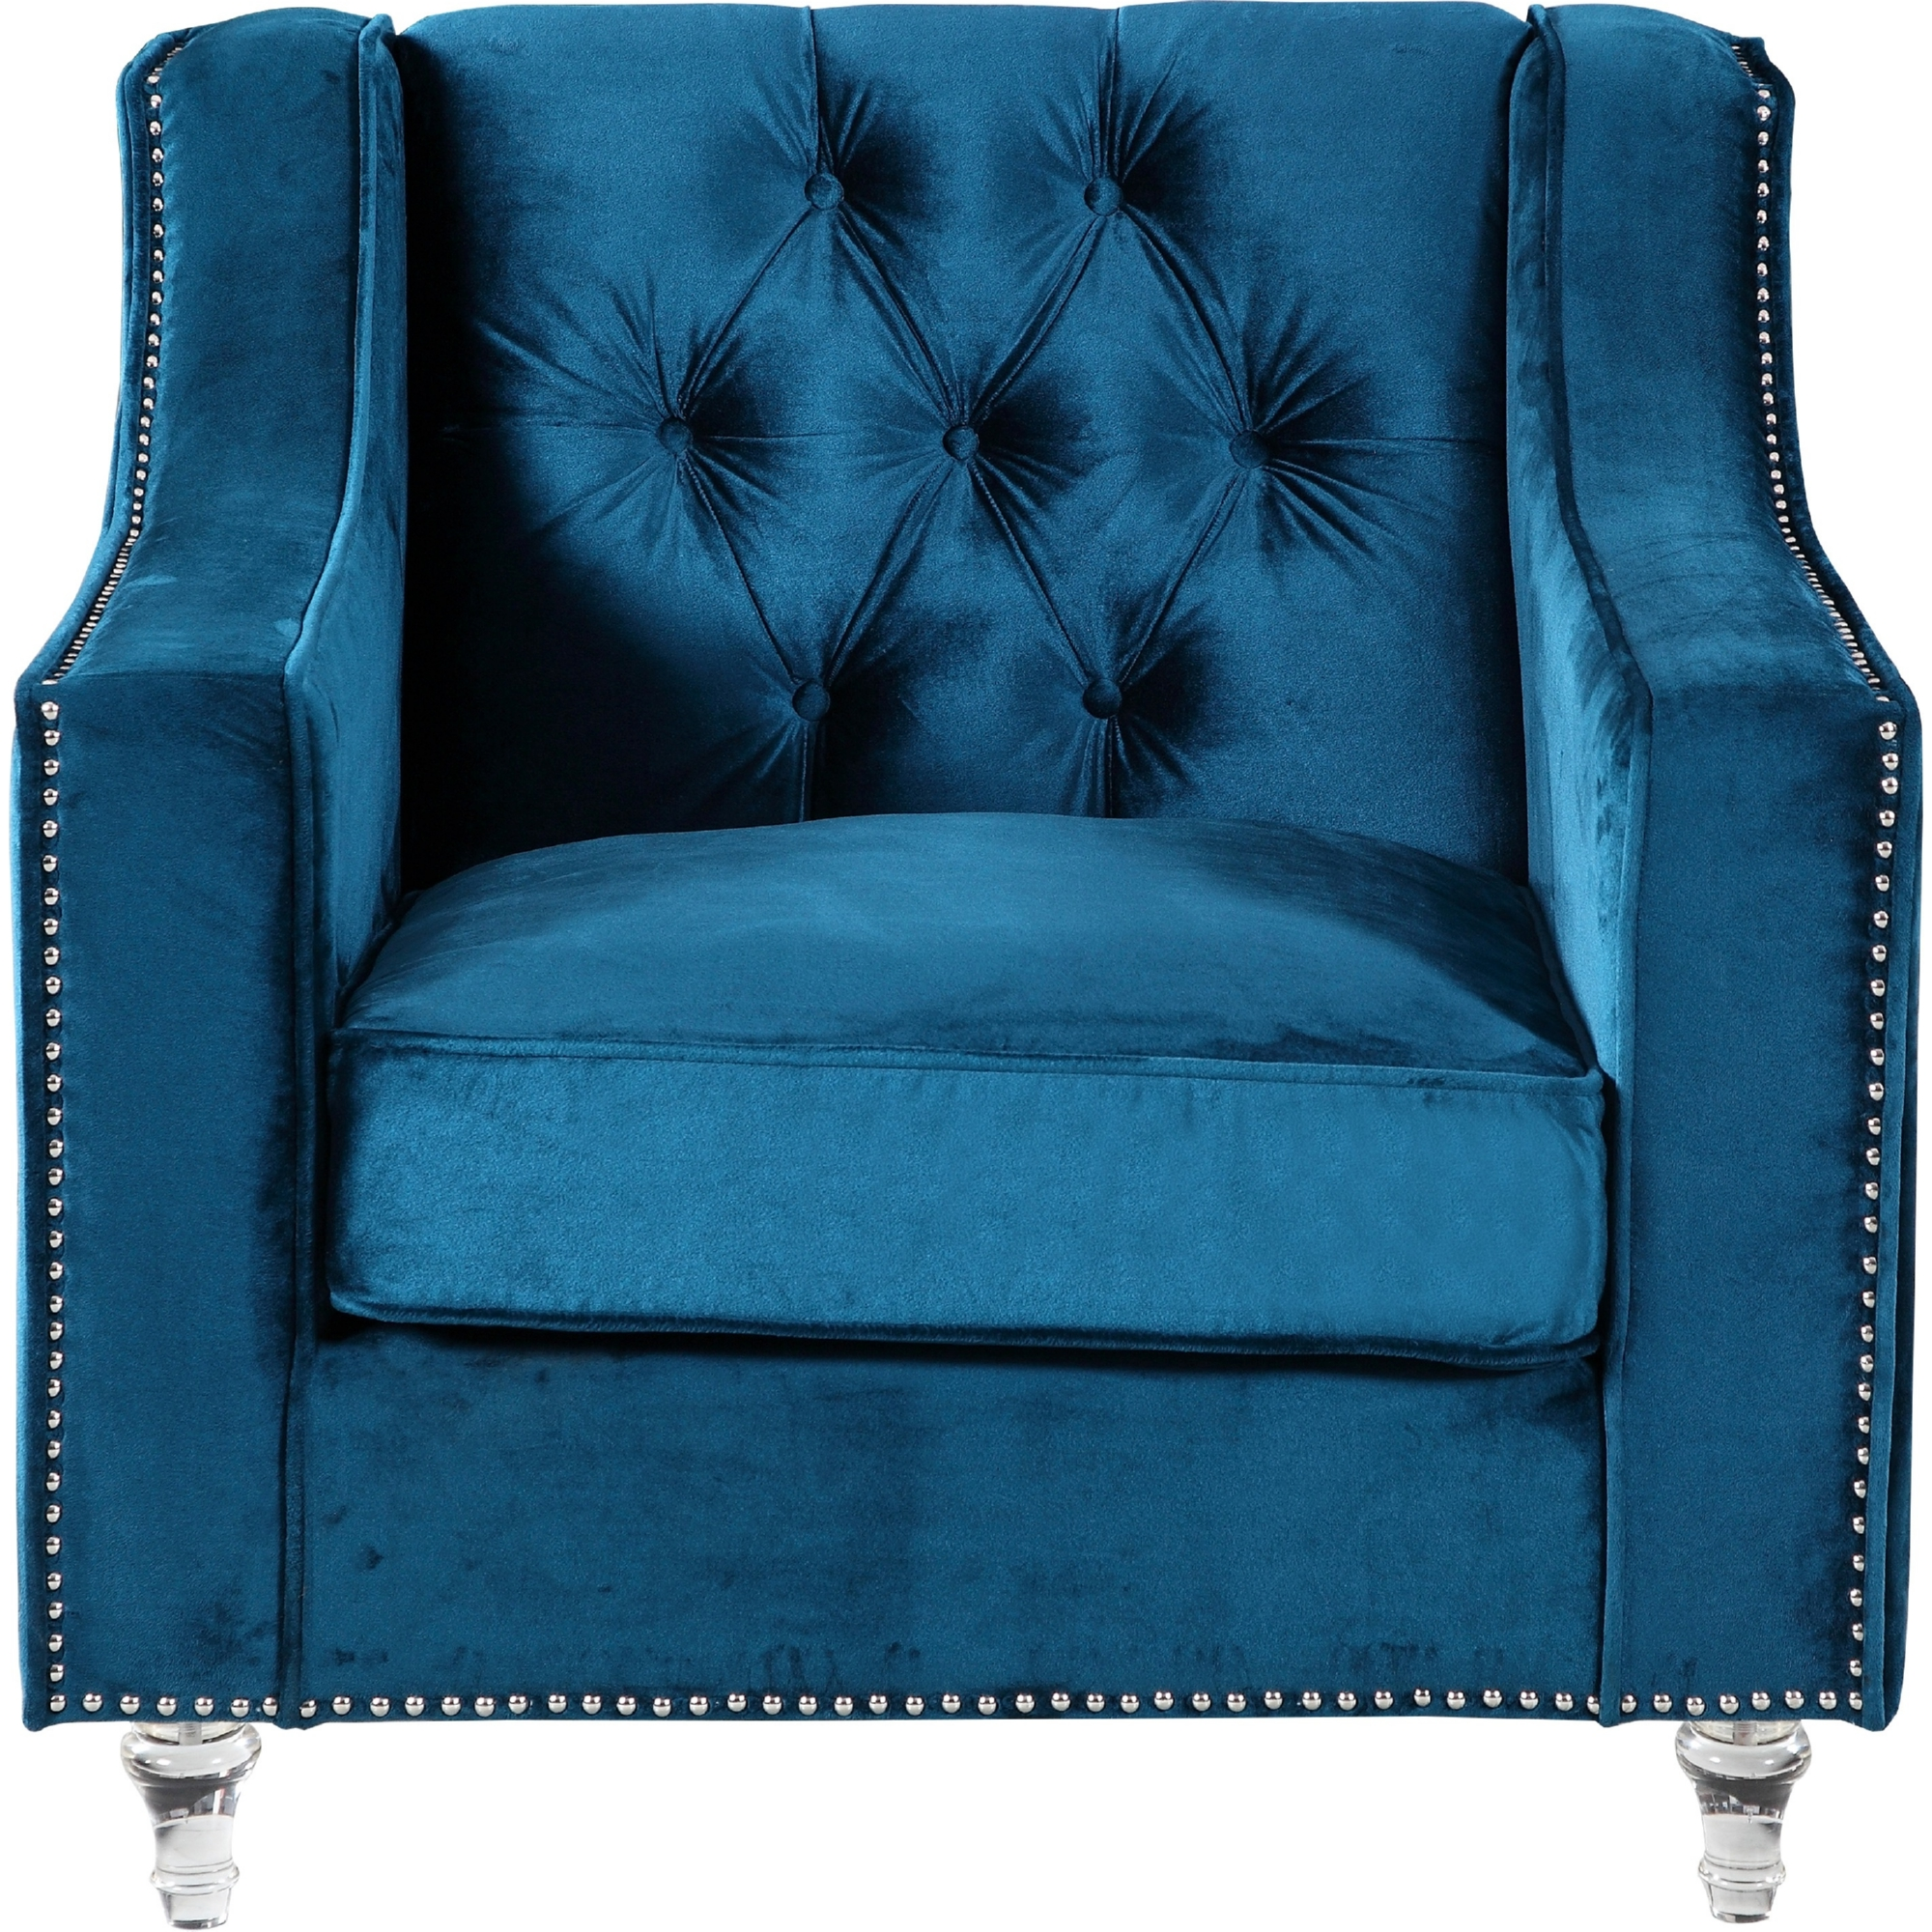 Chic Home FCC2574 Dylan Club Chair in Tufted Navy Blue Velvet on